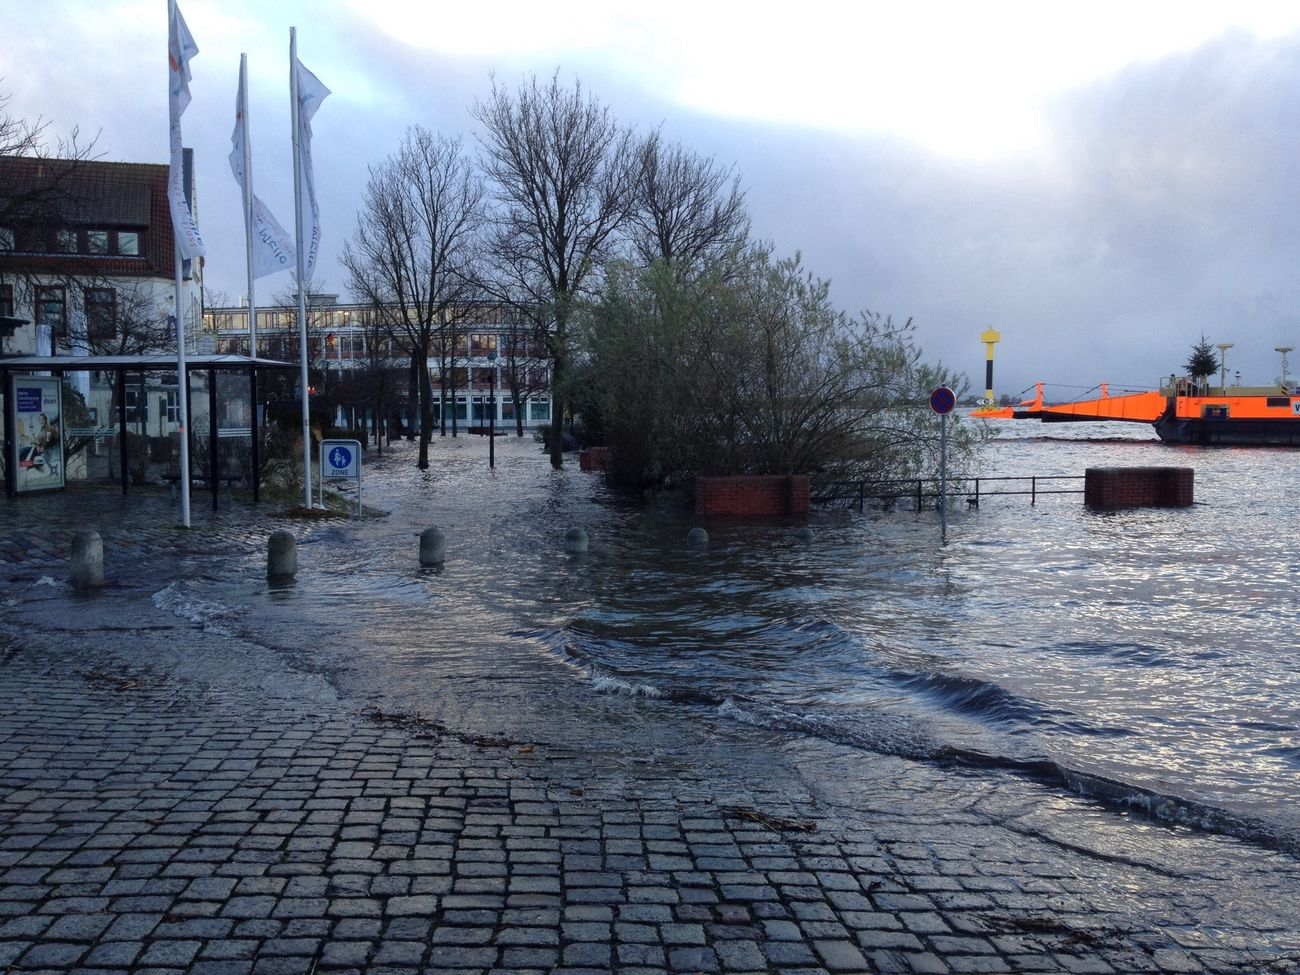 """After storm """"Xaver"""" Taking Photos Water_collection Flood Bremen - Vegesack"""